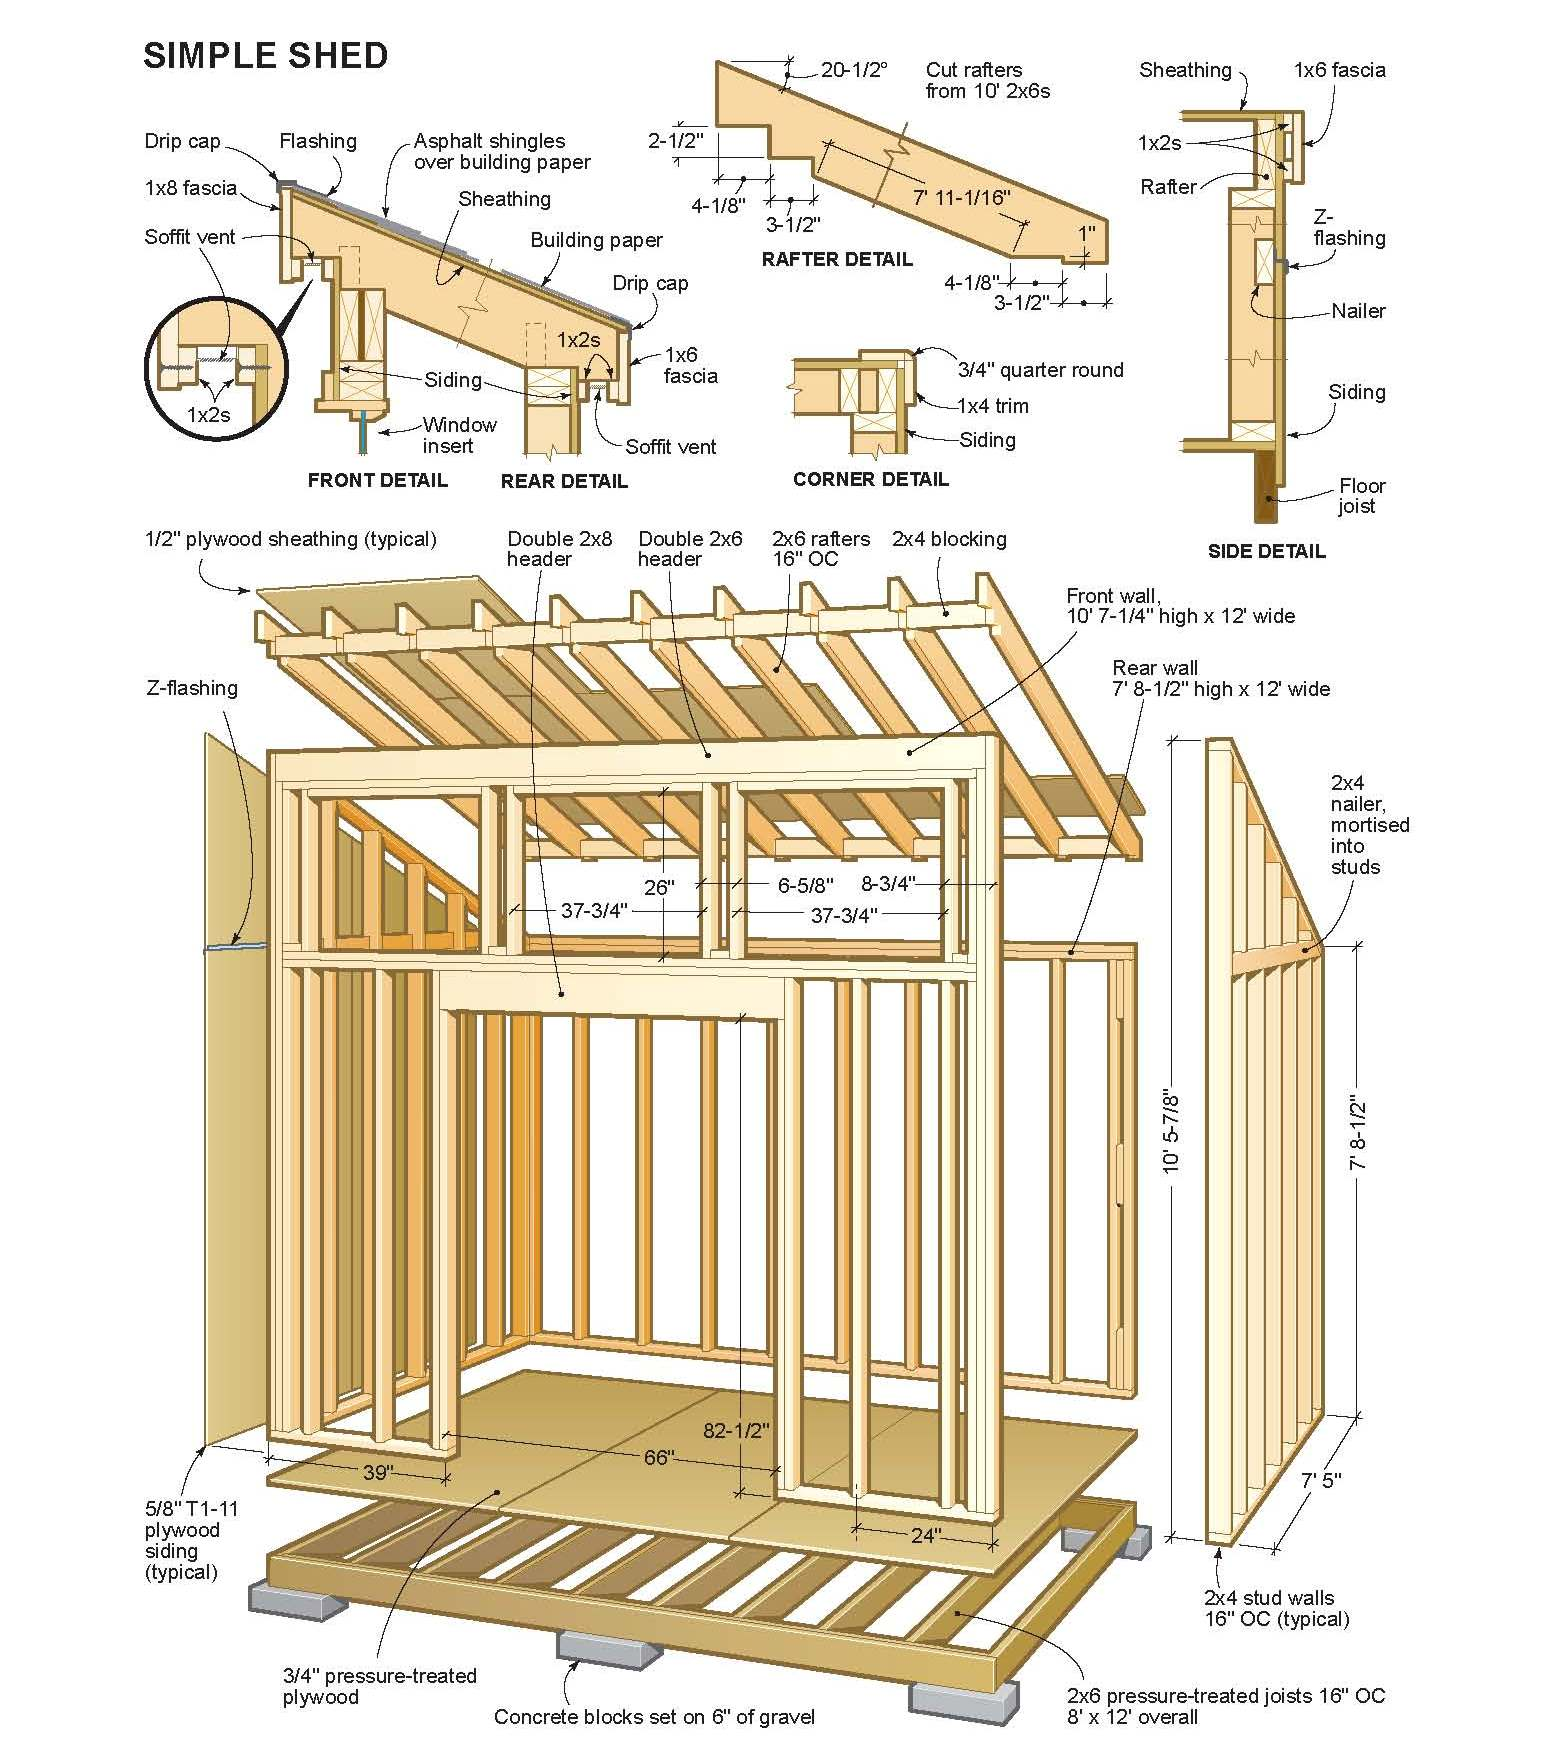 ... - Shed Plans The 10 X 12 Shed At The Same Time As The Lean To Shed